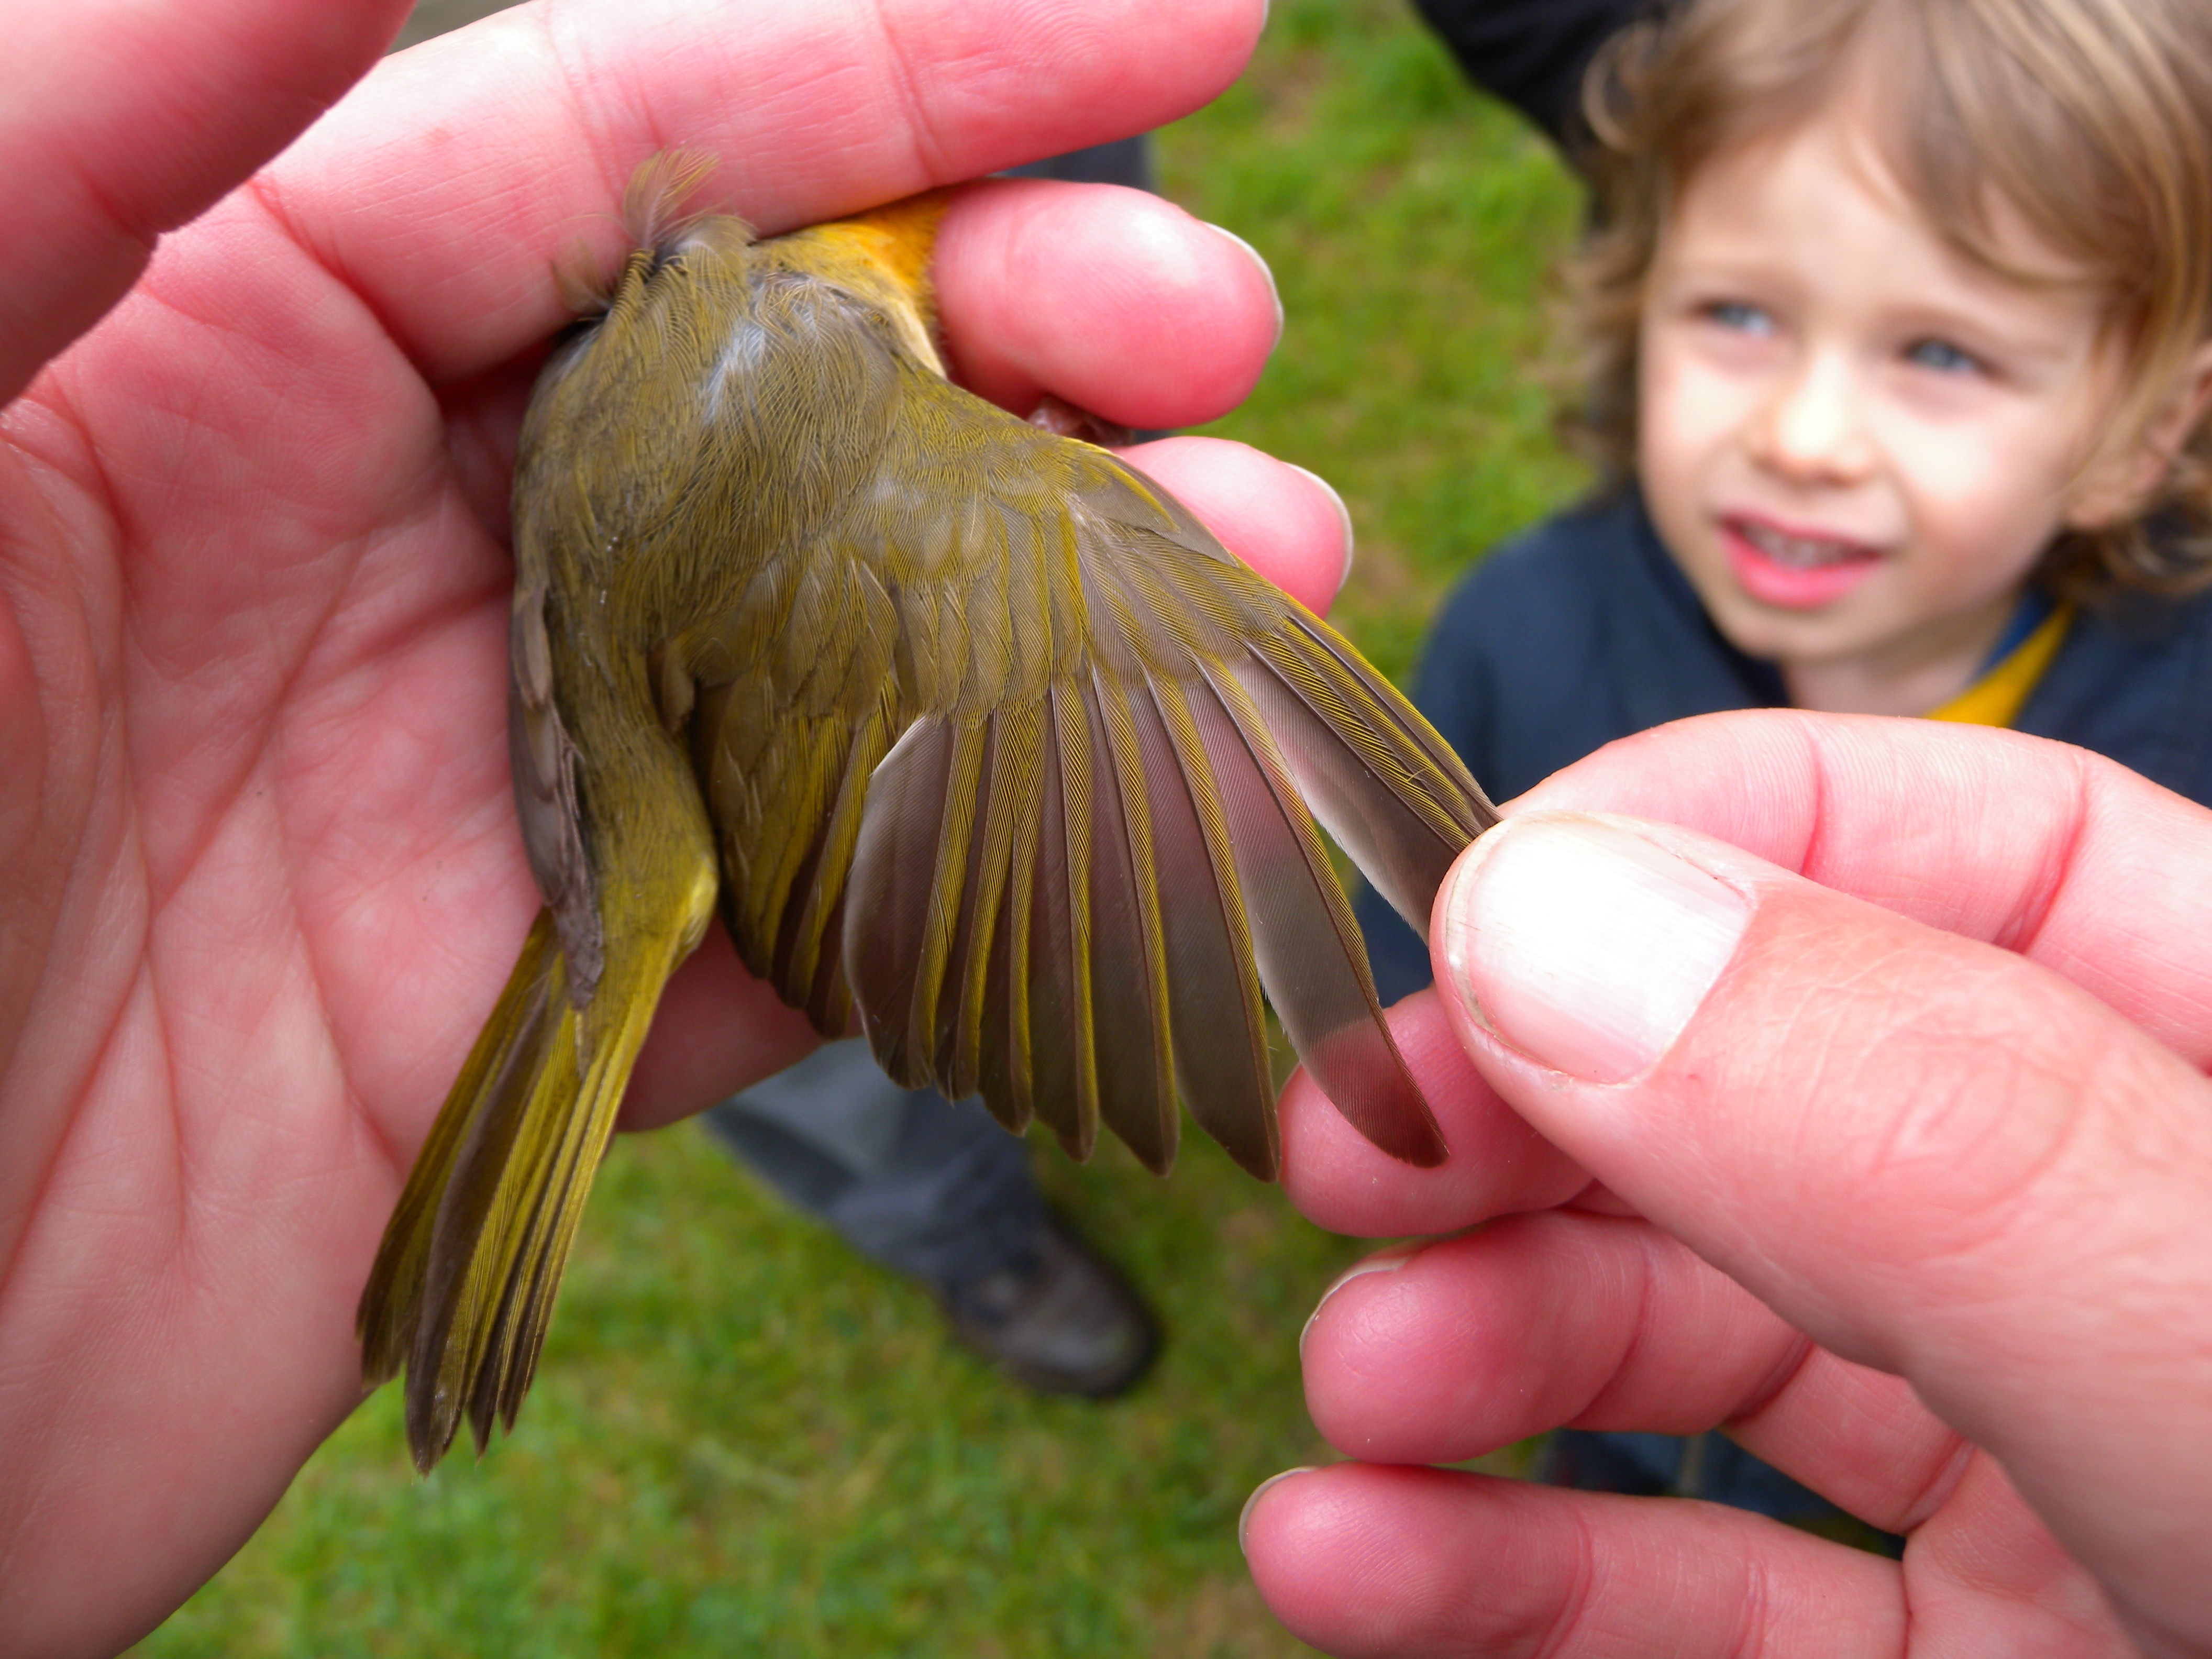 Ageing a Common Yellowthroat by primary covert feathers.  Photo by Blake Goll.